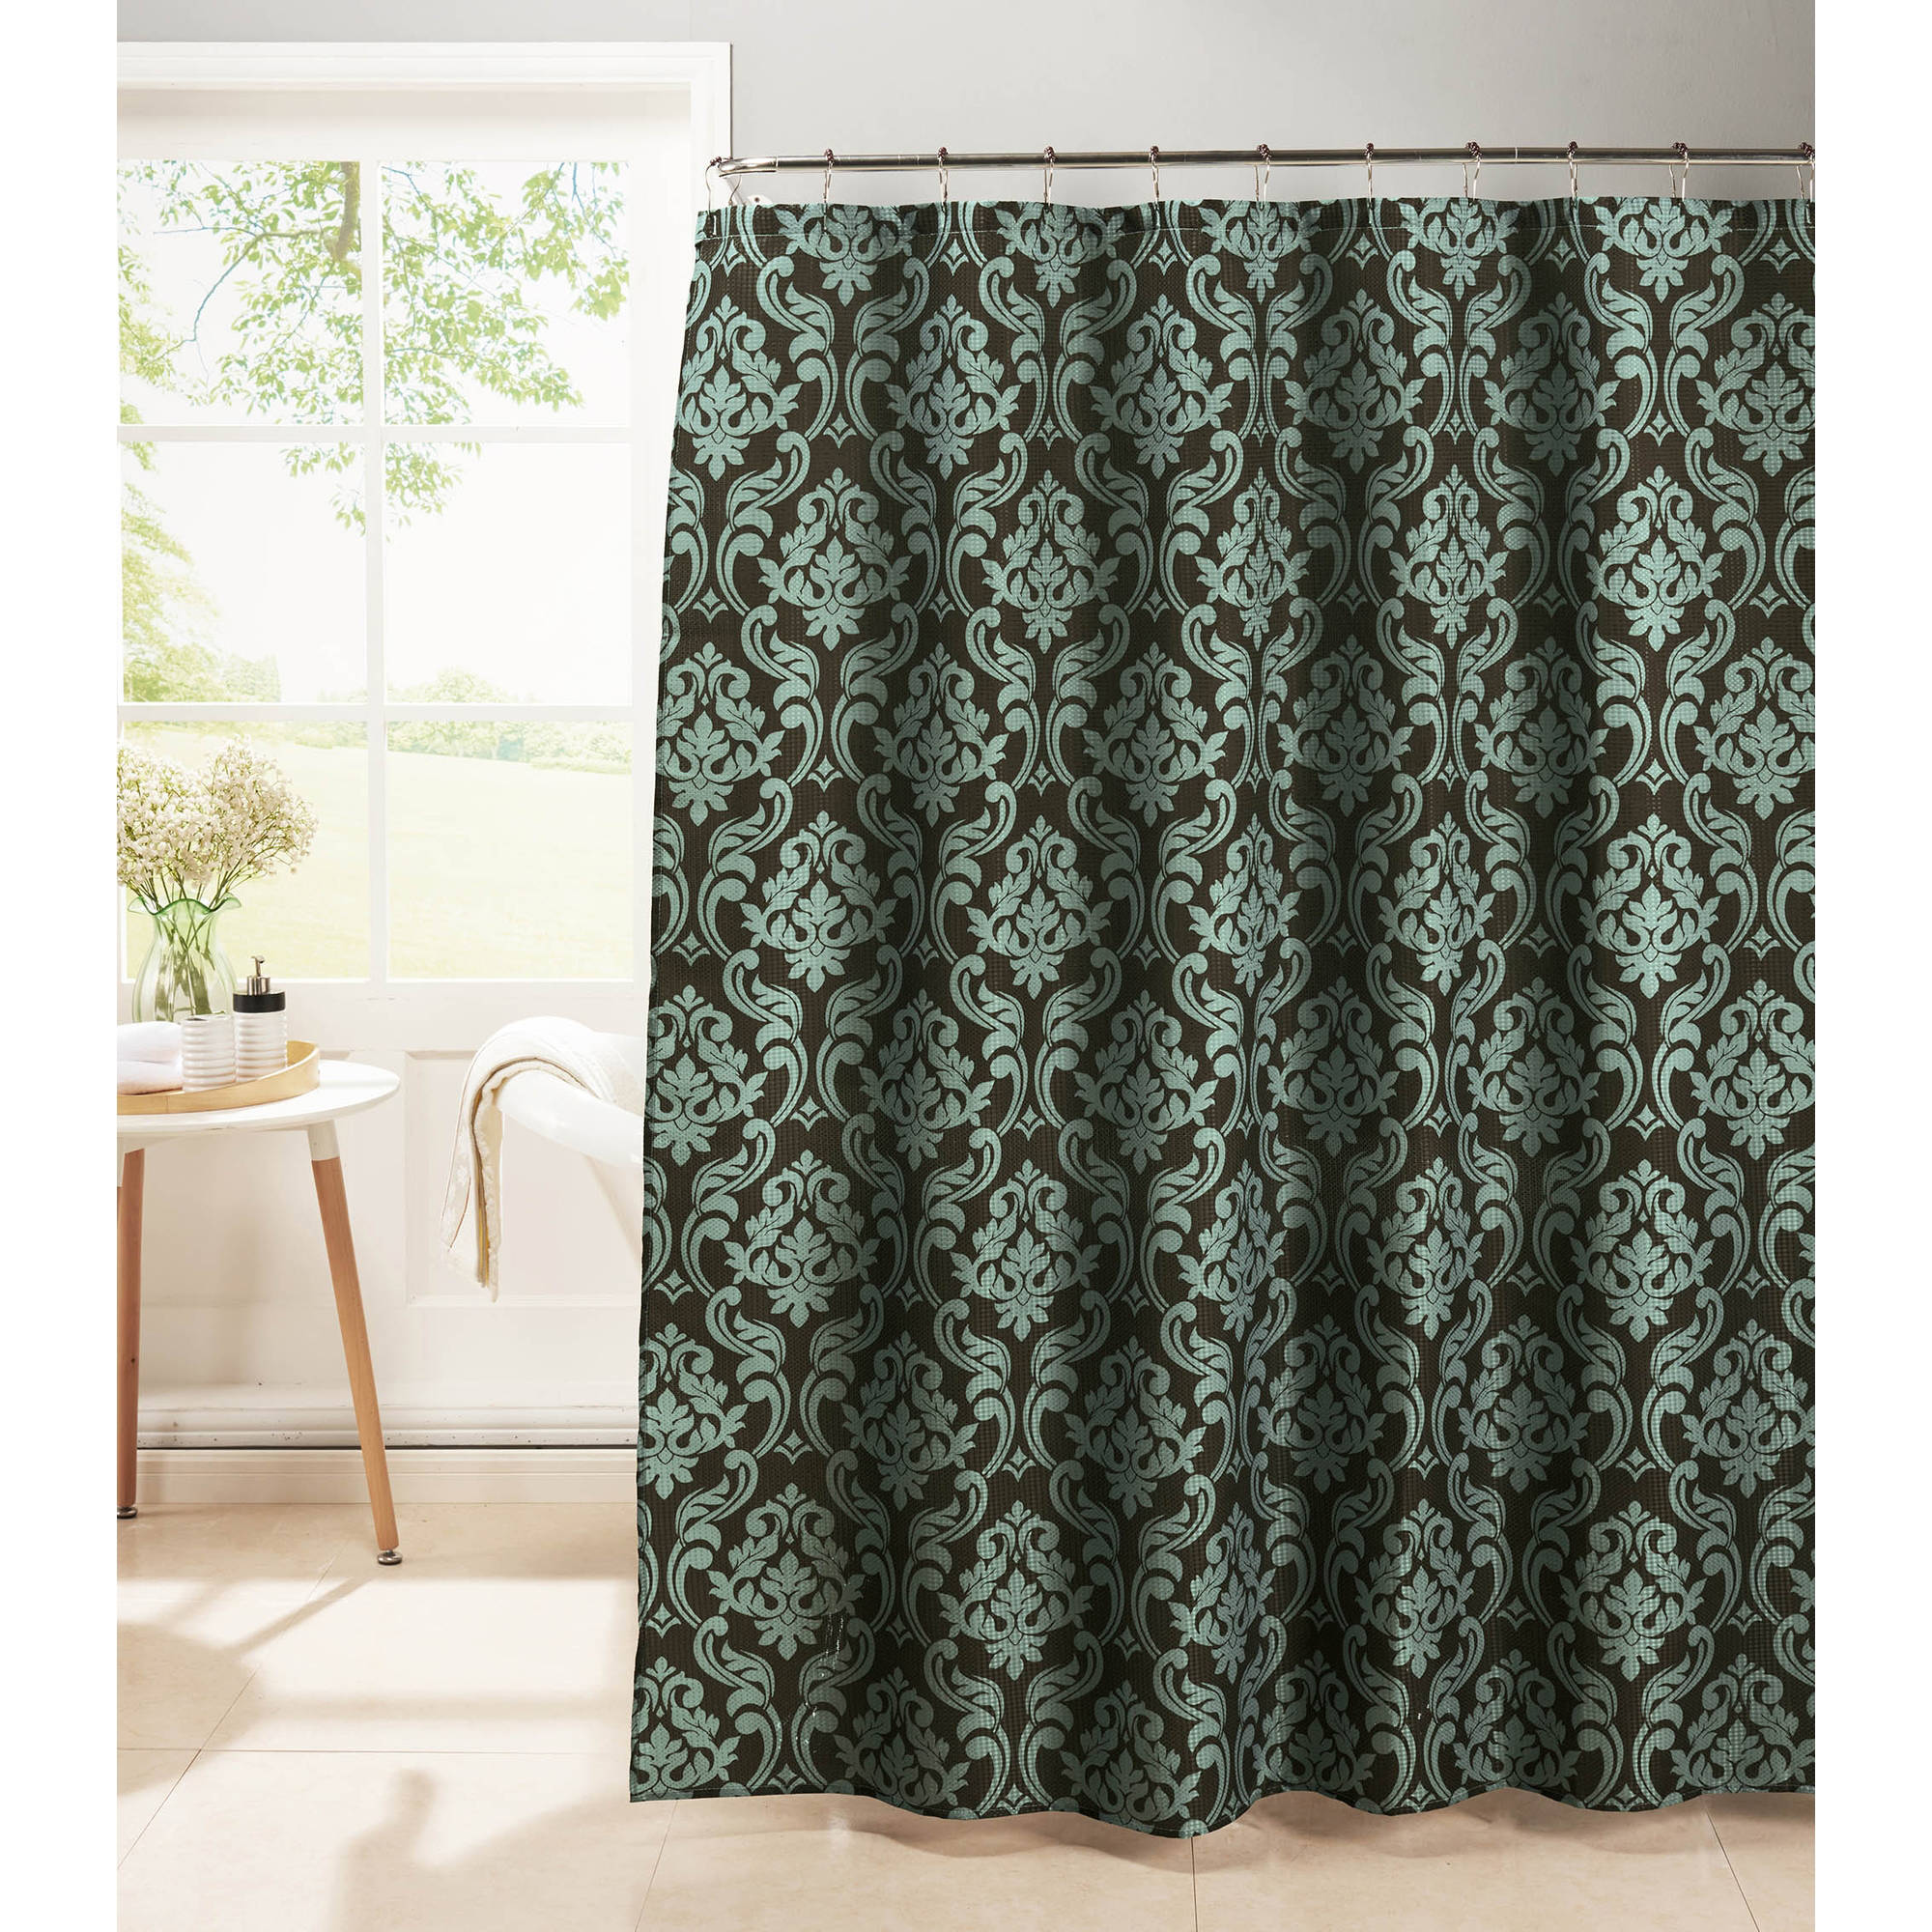 Chain Damask Diamond Weave Textured Shower Curtain with Metal Roller Hooks